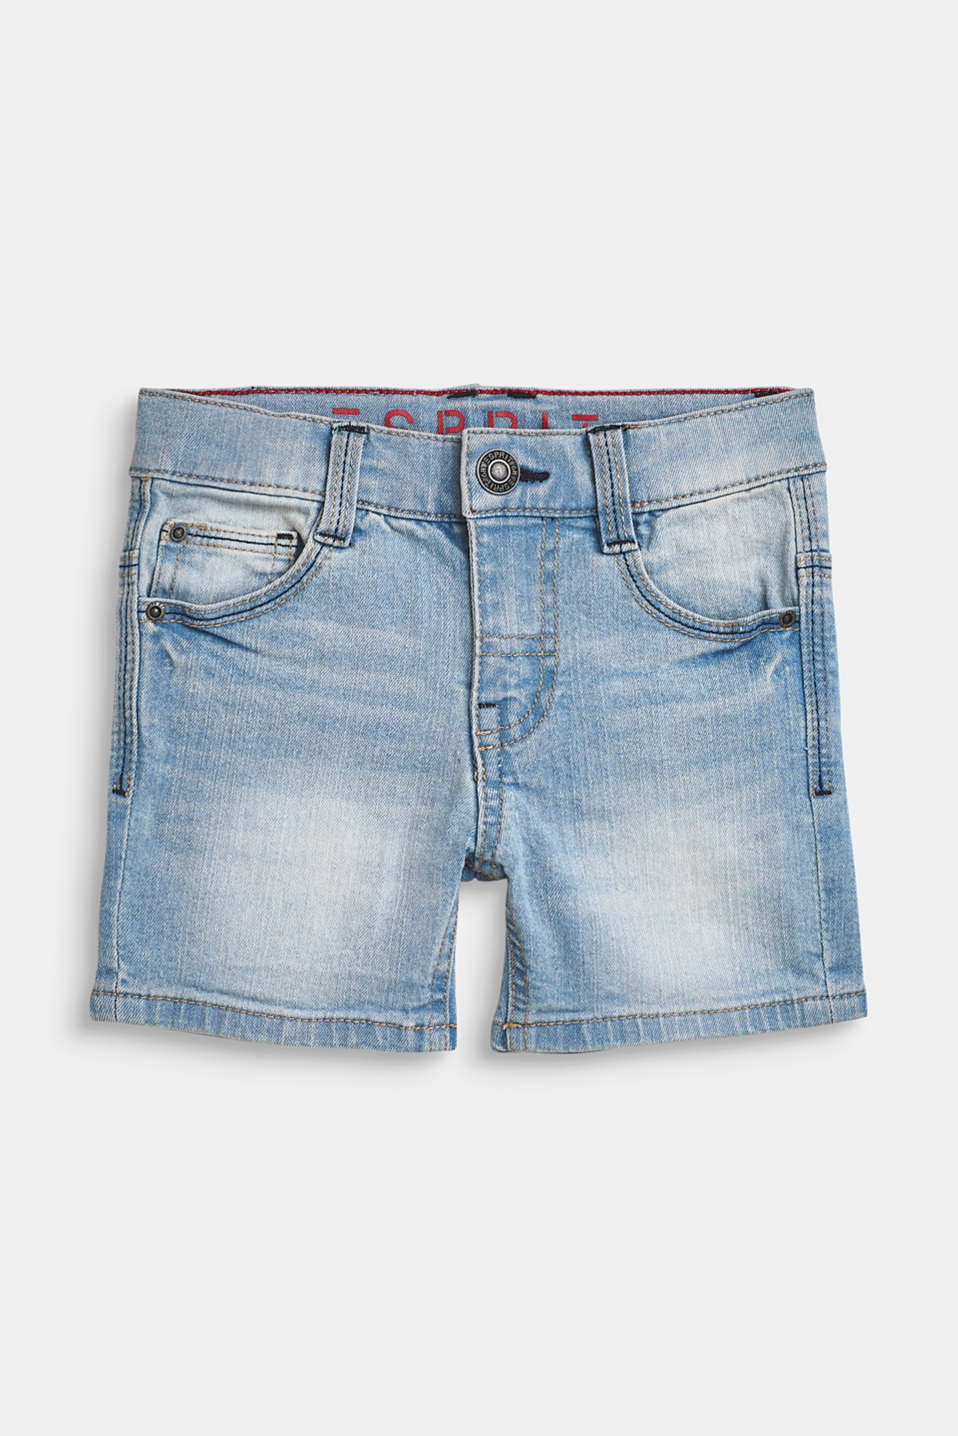 Esprit - Short en jean super stretch au délavage d'aspect usé